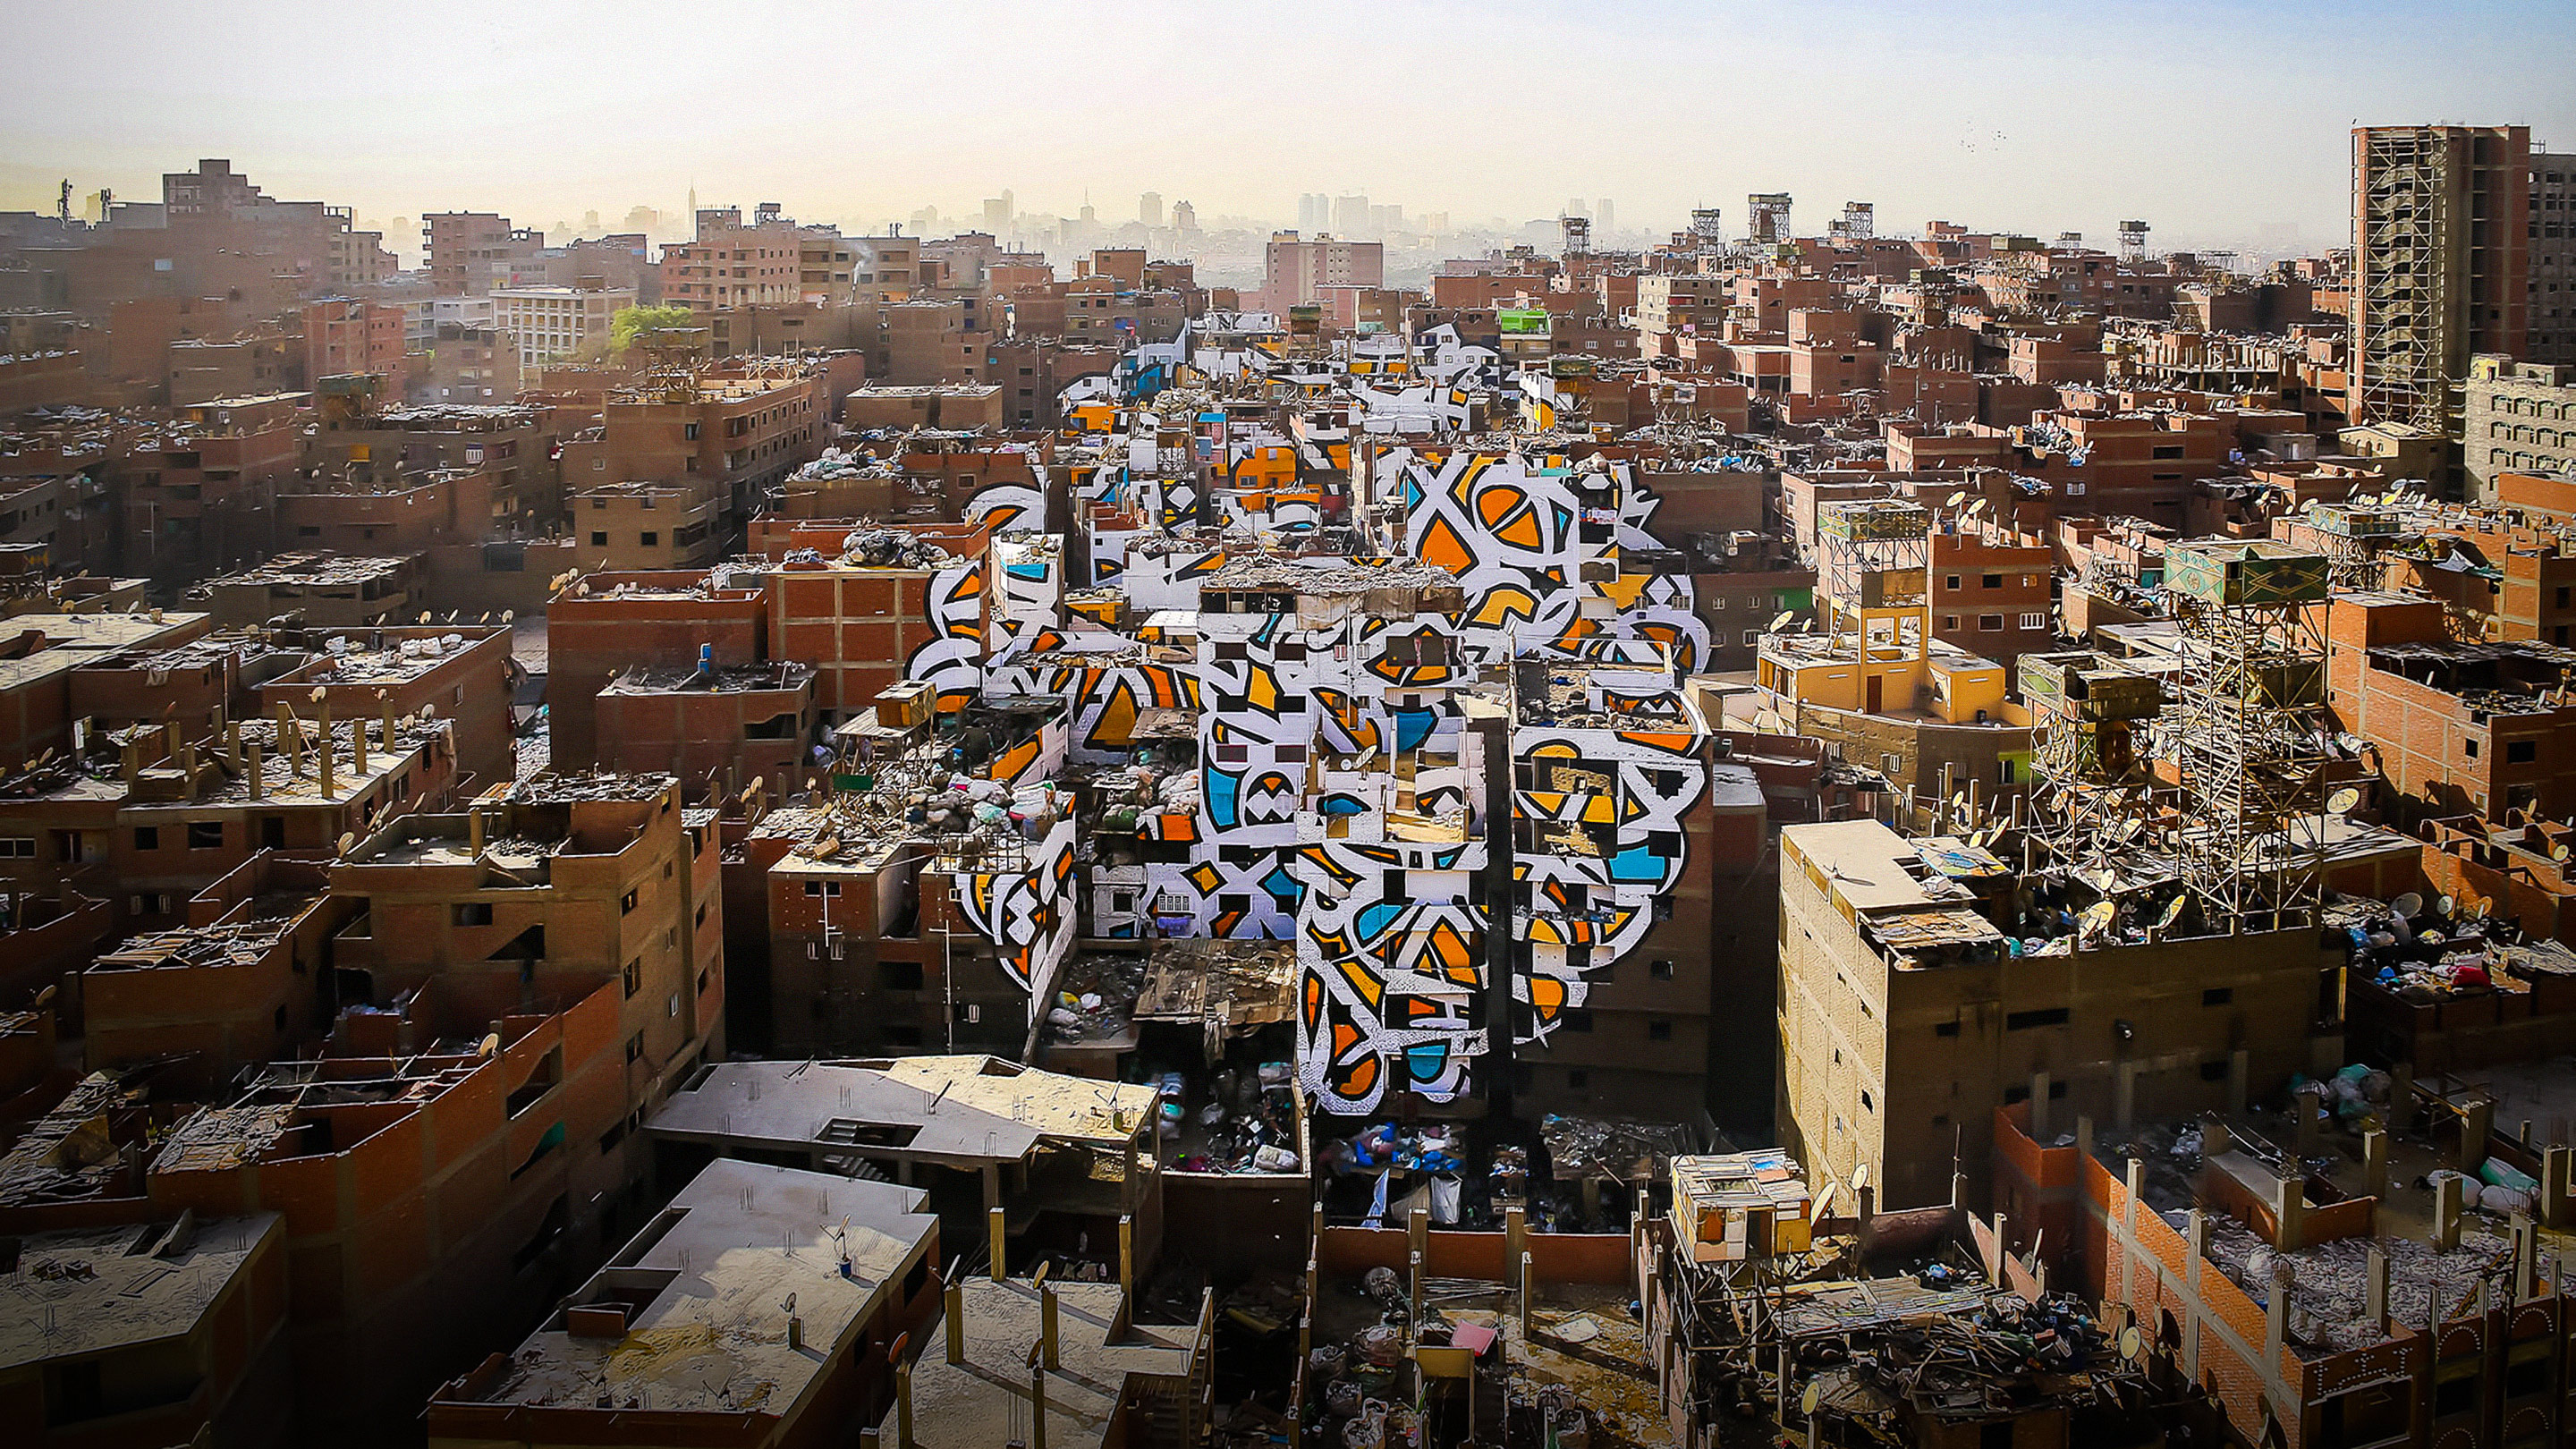 eL Seed: A project of peace, painted across 50 buildings thumbnail